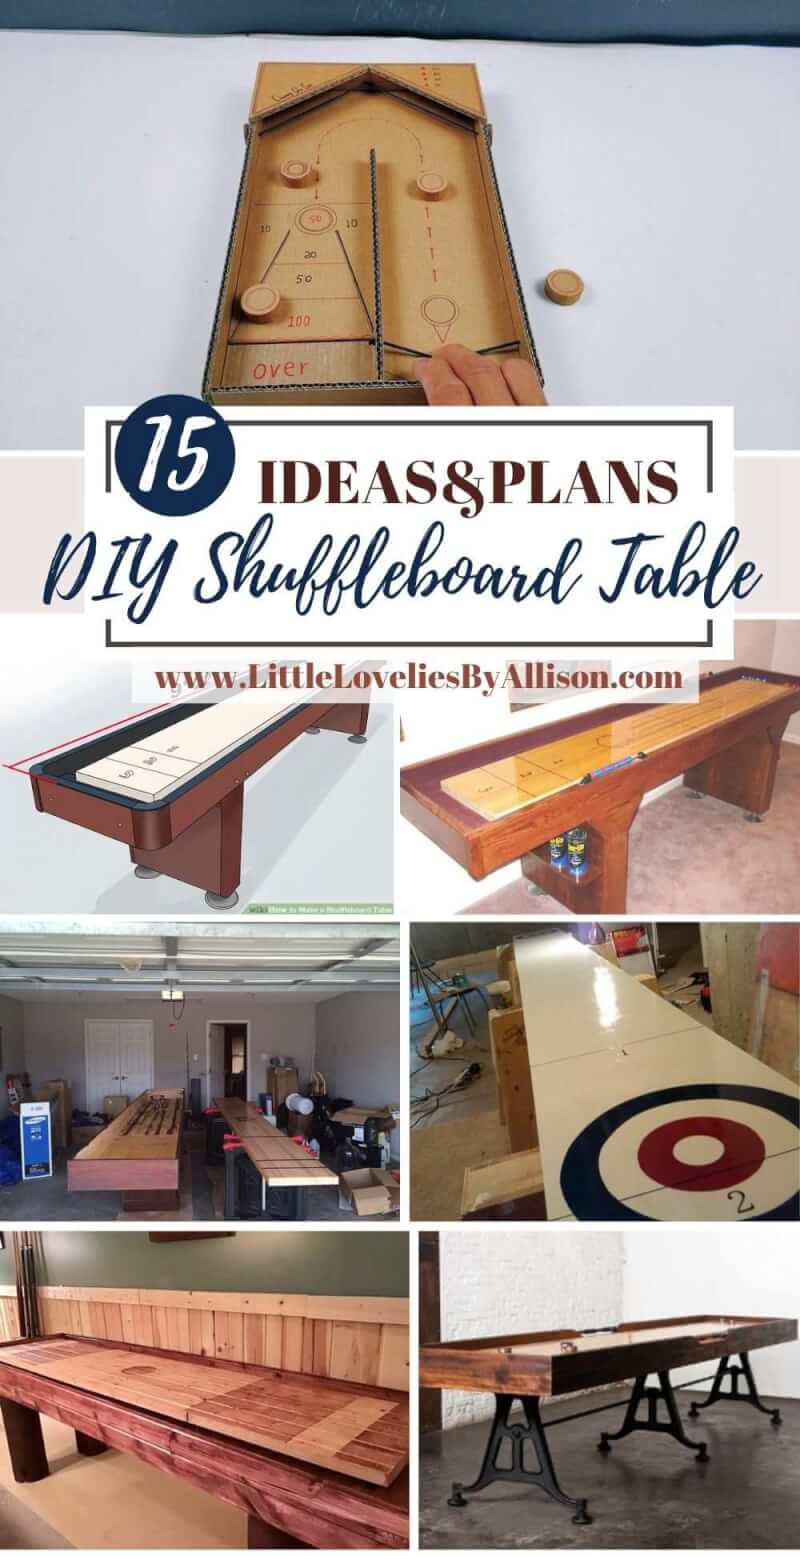 15 DIY Shuffleboard Table Projects_ Do It Yourself Easily